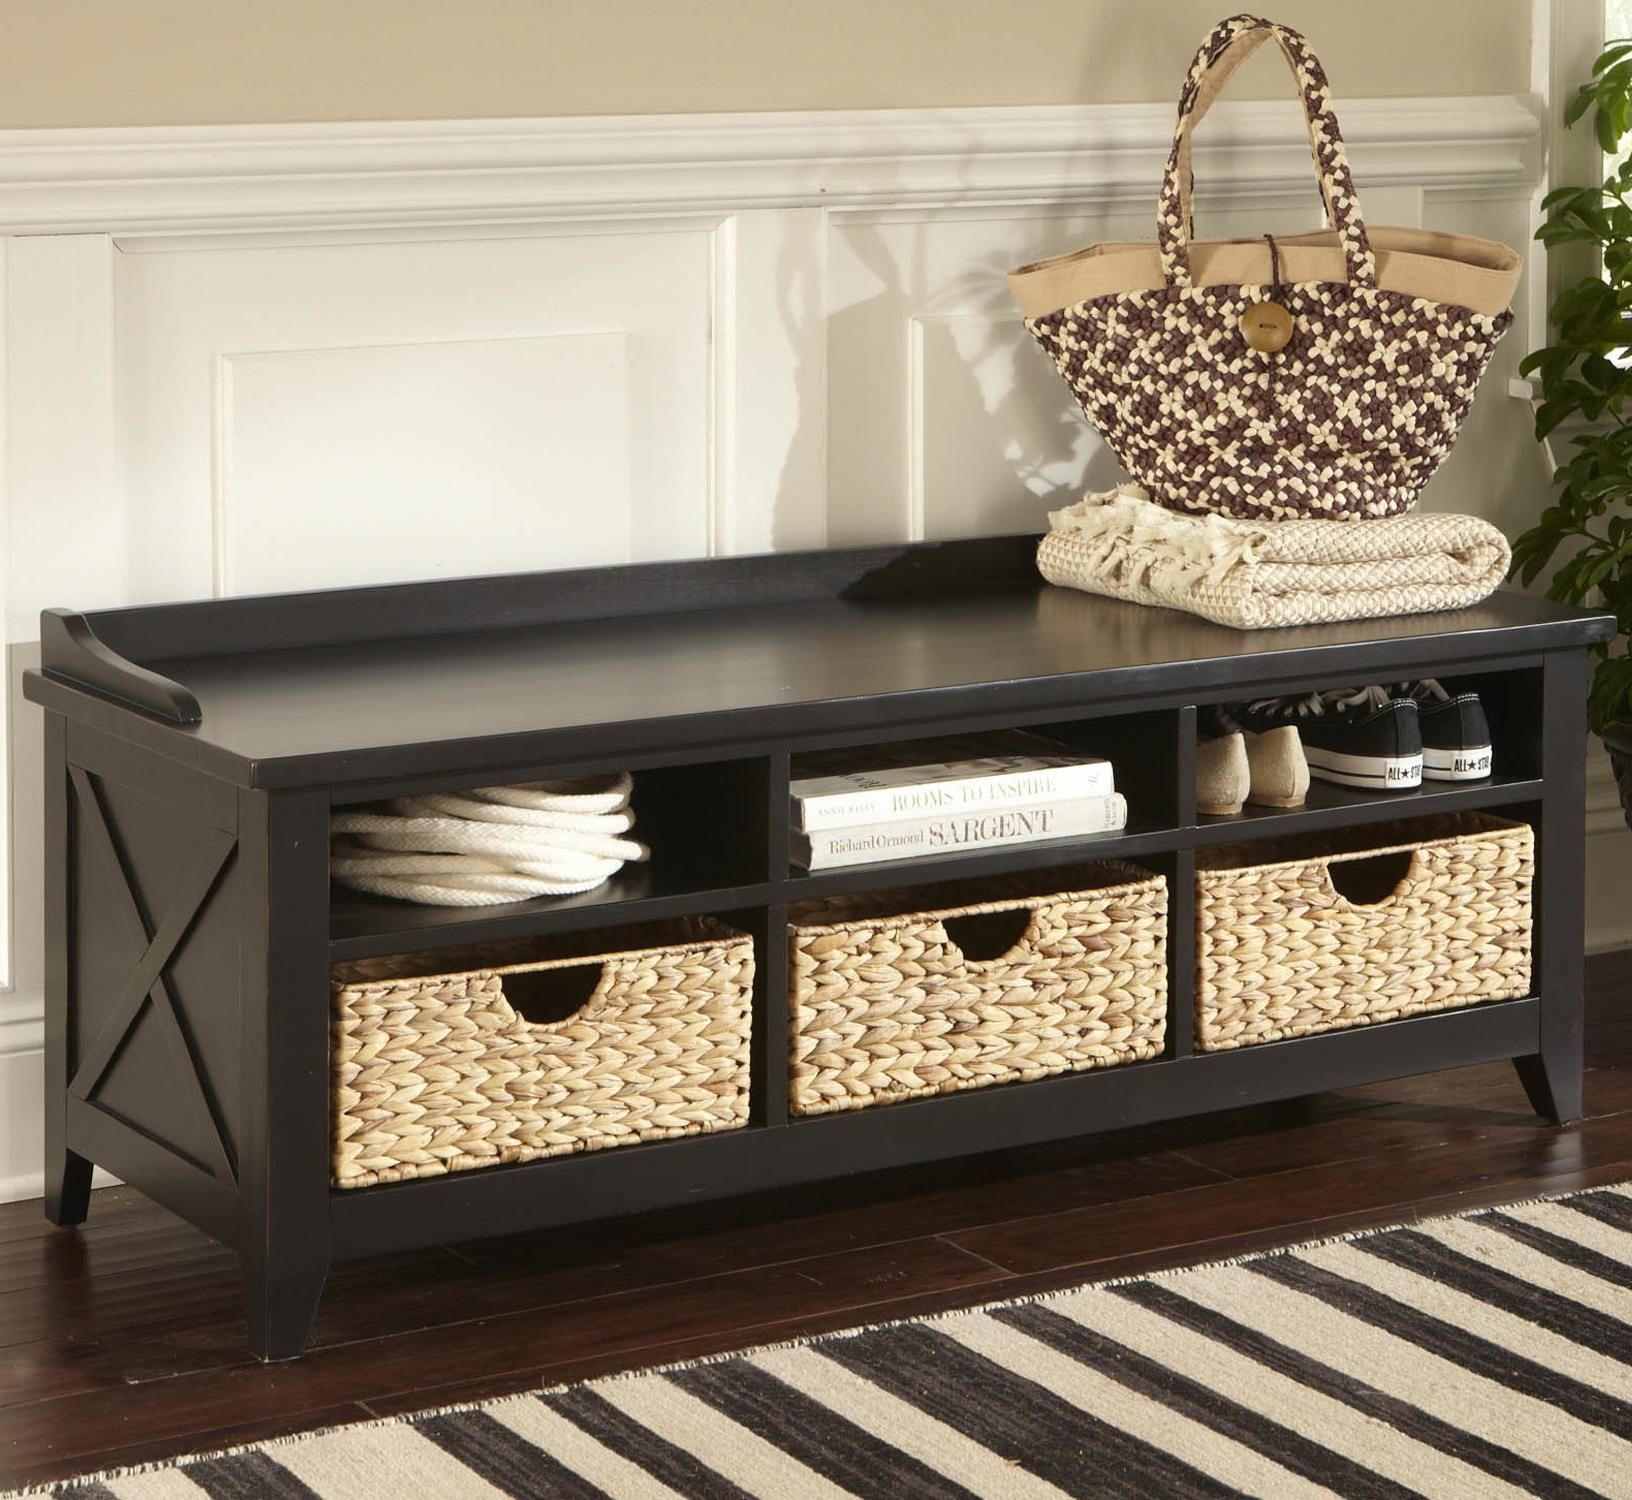 black & creme striped rug in front of black entryway bench | For the ...